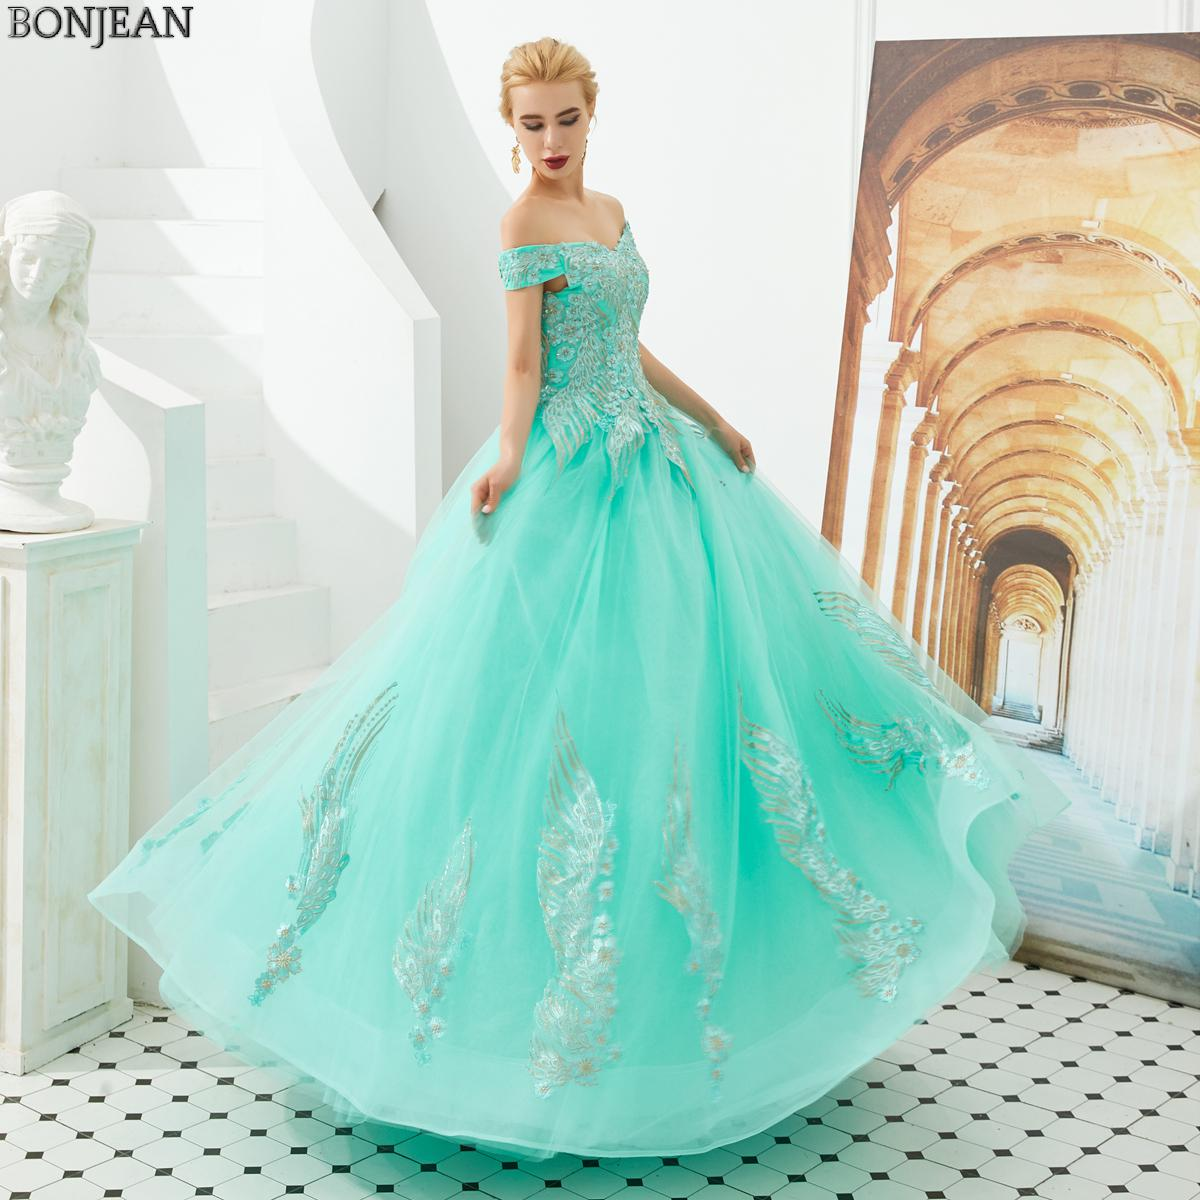 US $128.7 35% OFF|Turquoise Ball Gown Prom Dresses Appliqued Lace Off The  Shoulder Plus Size Puffy Prom Dress Plus Size Formal Dress Women Elegant-in  ...